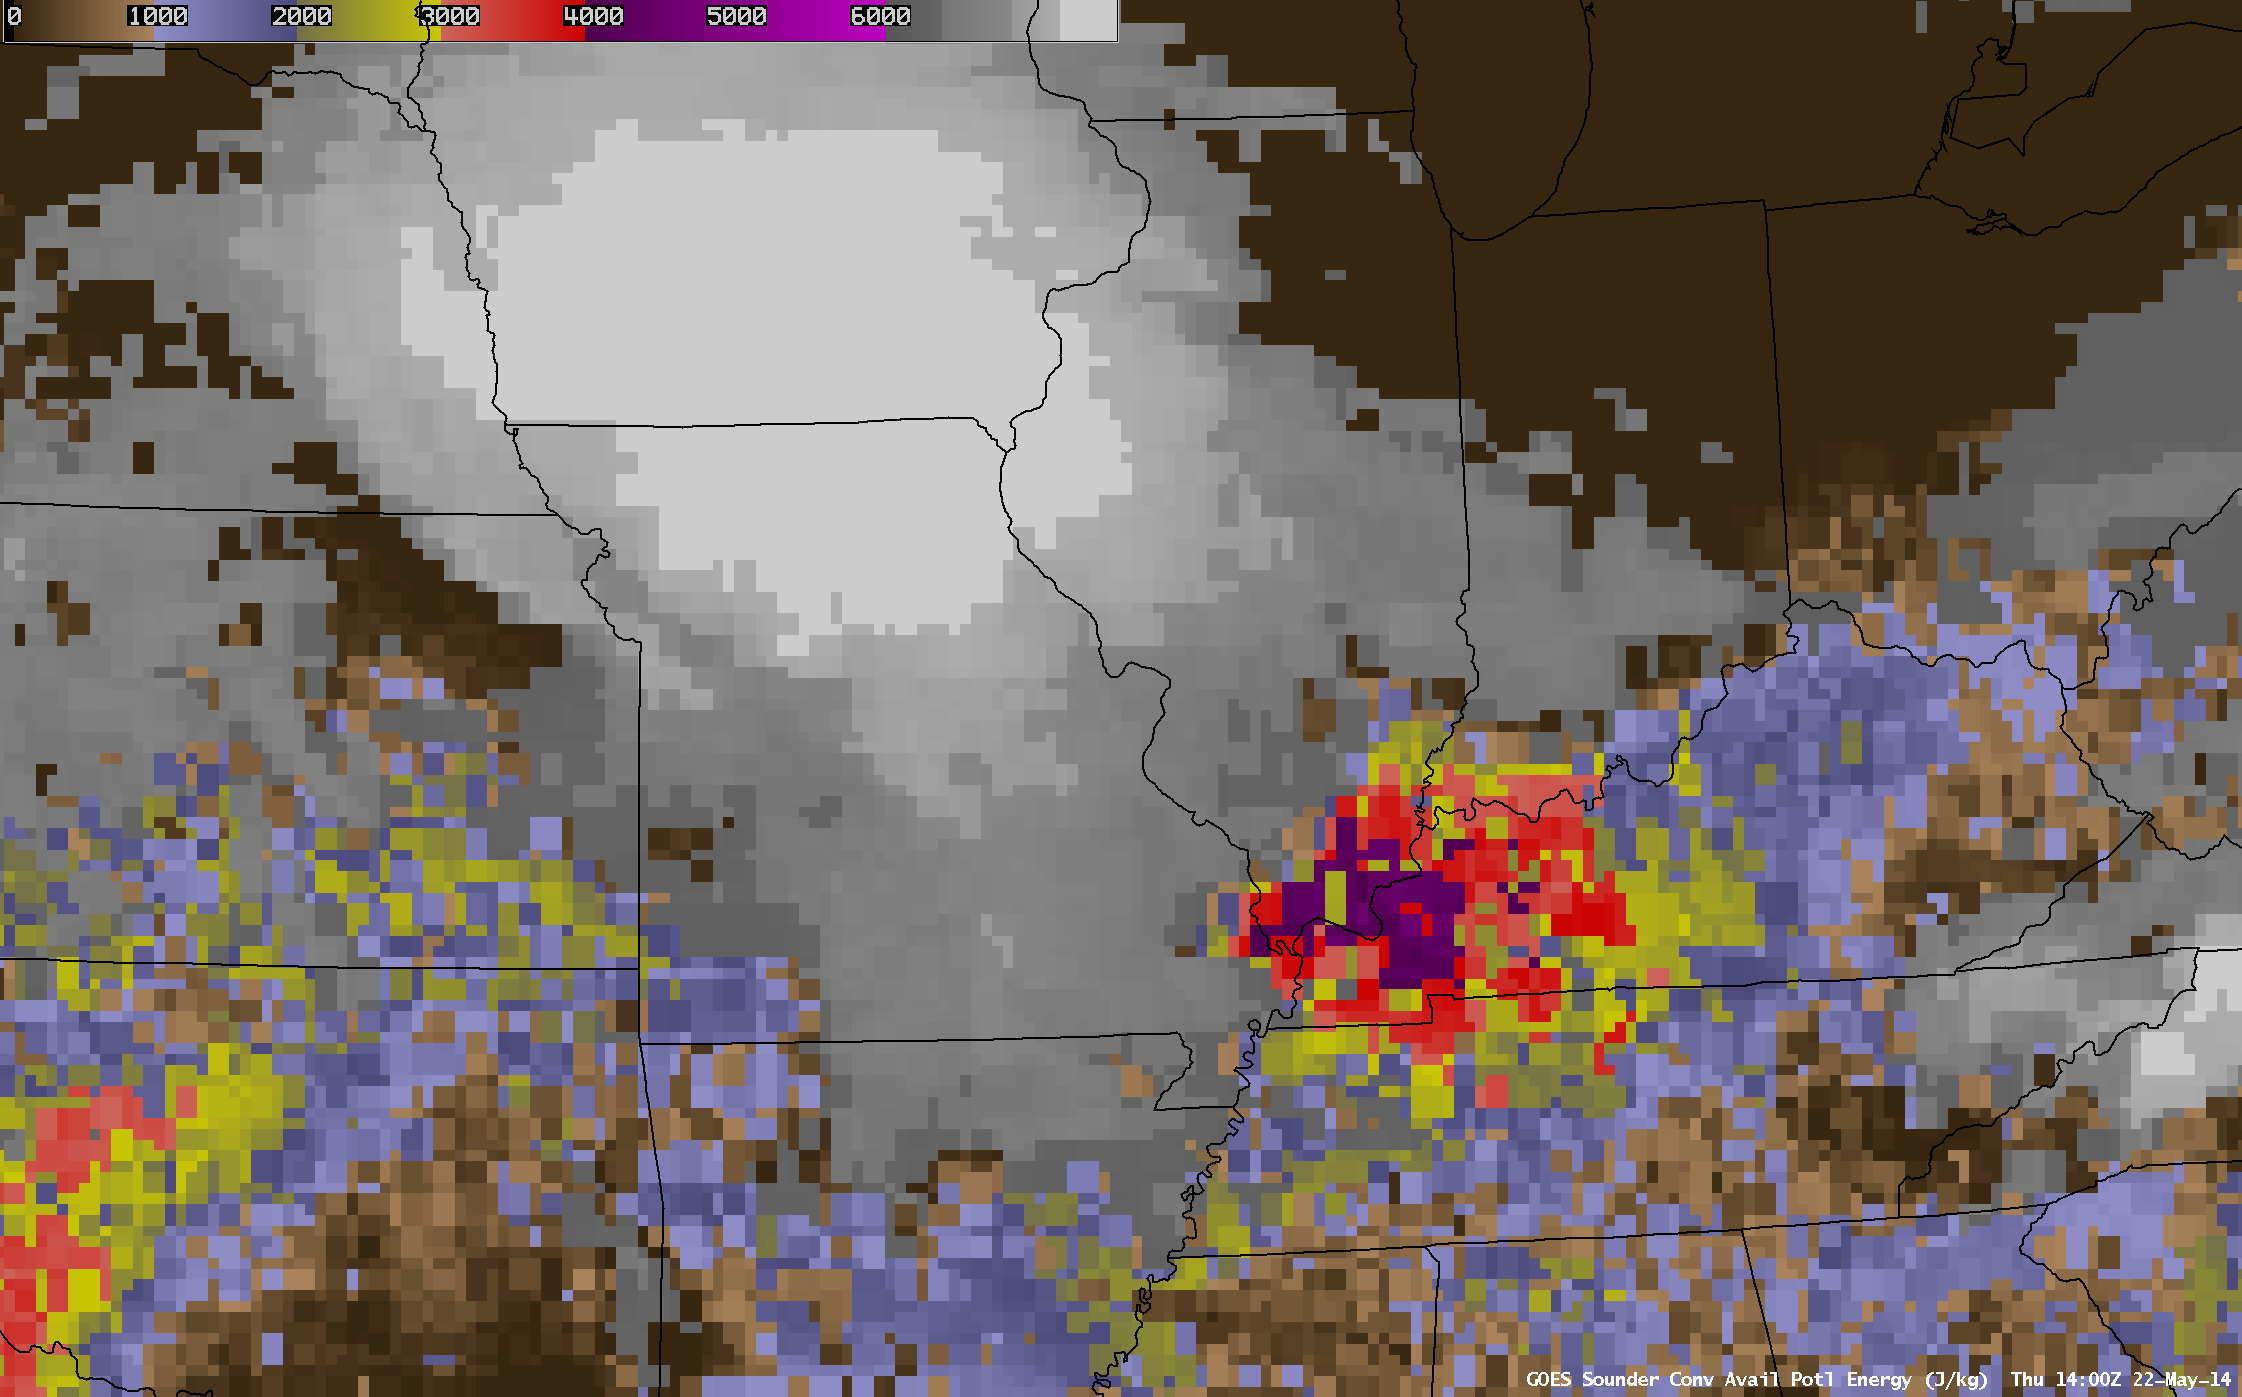 GOES-13 DPI Convective Available Potential Energy (CAPE) on May 22, times as indicated (click to play animation)